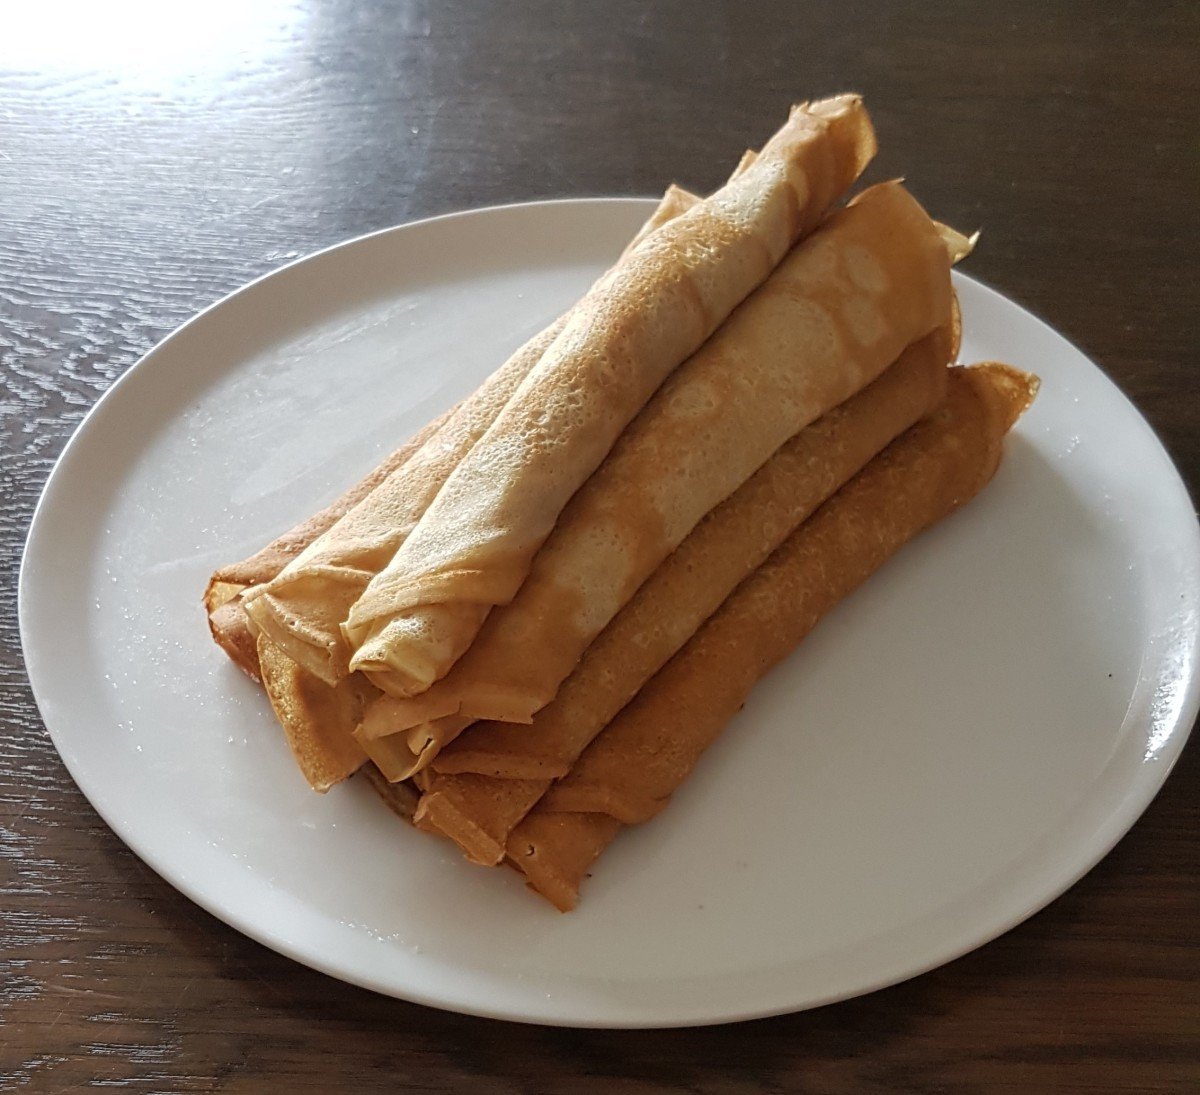 Rolled up Icelandic pancakes with sugar.